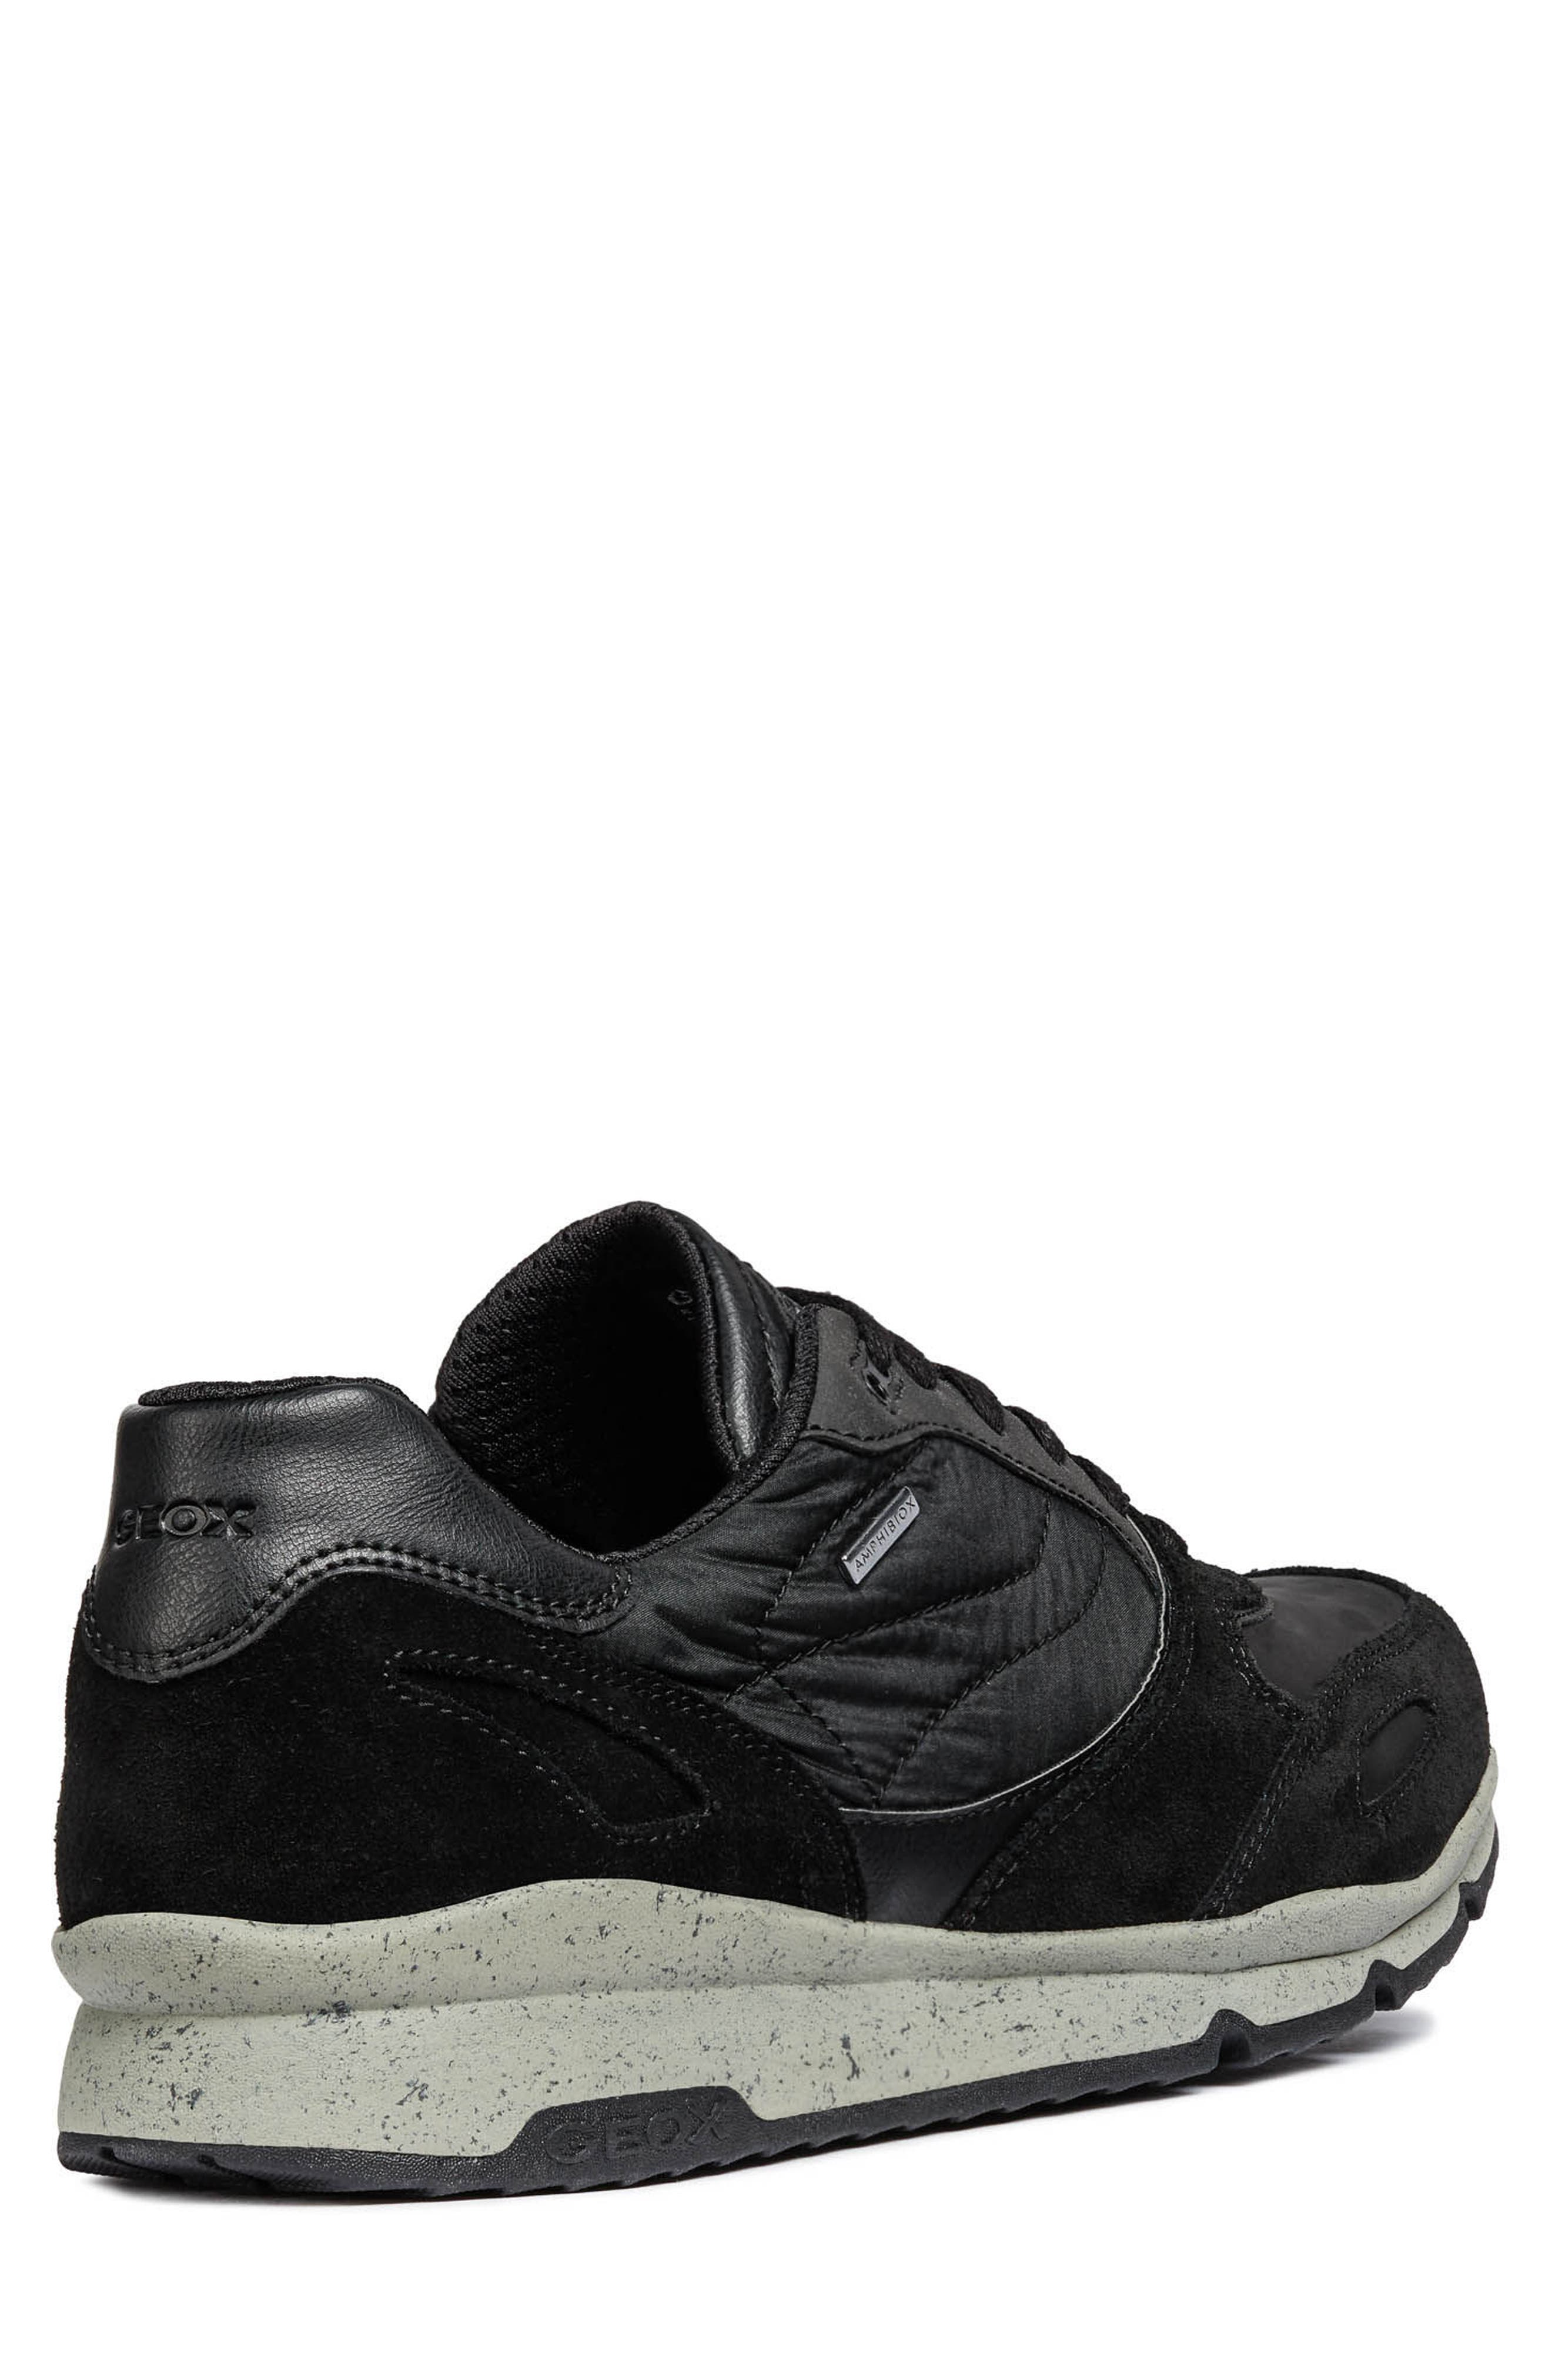 Sandro ABX Ambphibiox Waterproof Sneaker,                             Alternate thumbnail 2, color,                             BLACK/ BLACK LEATHER